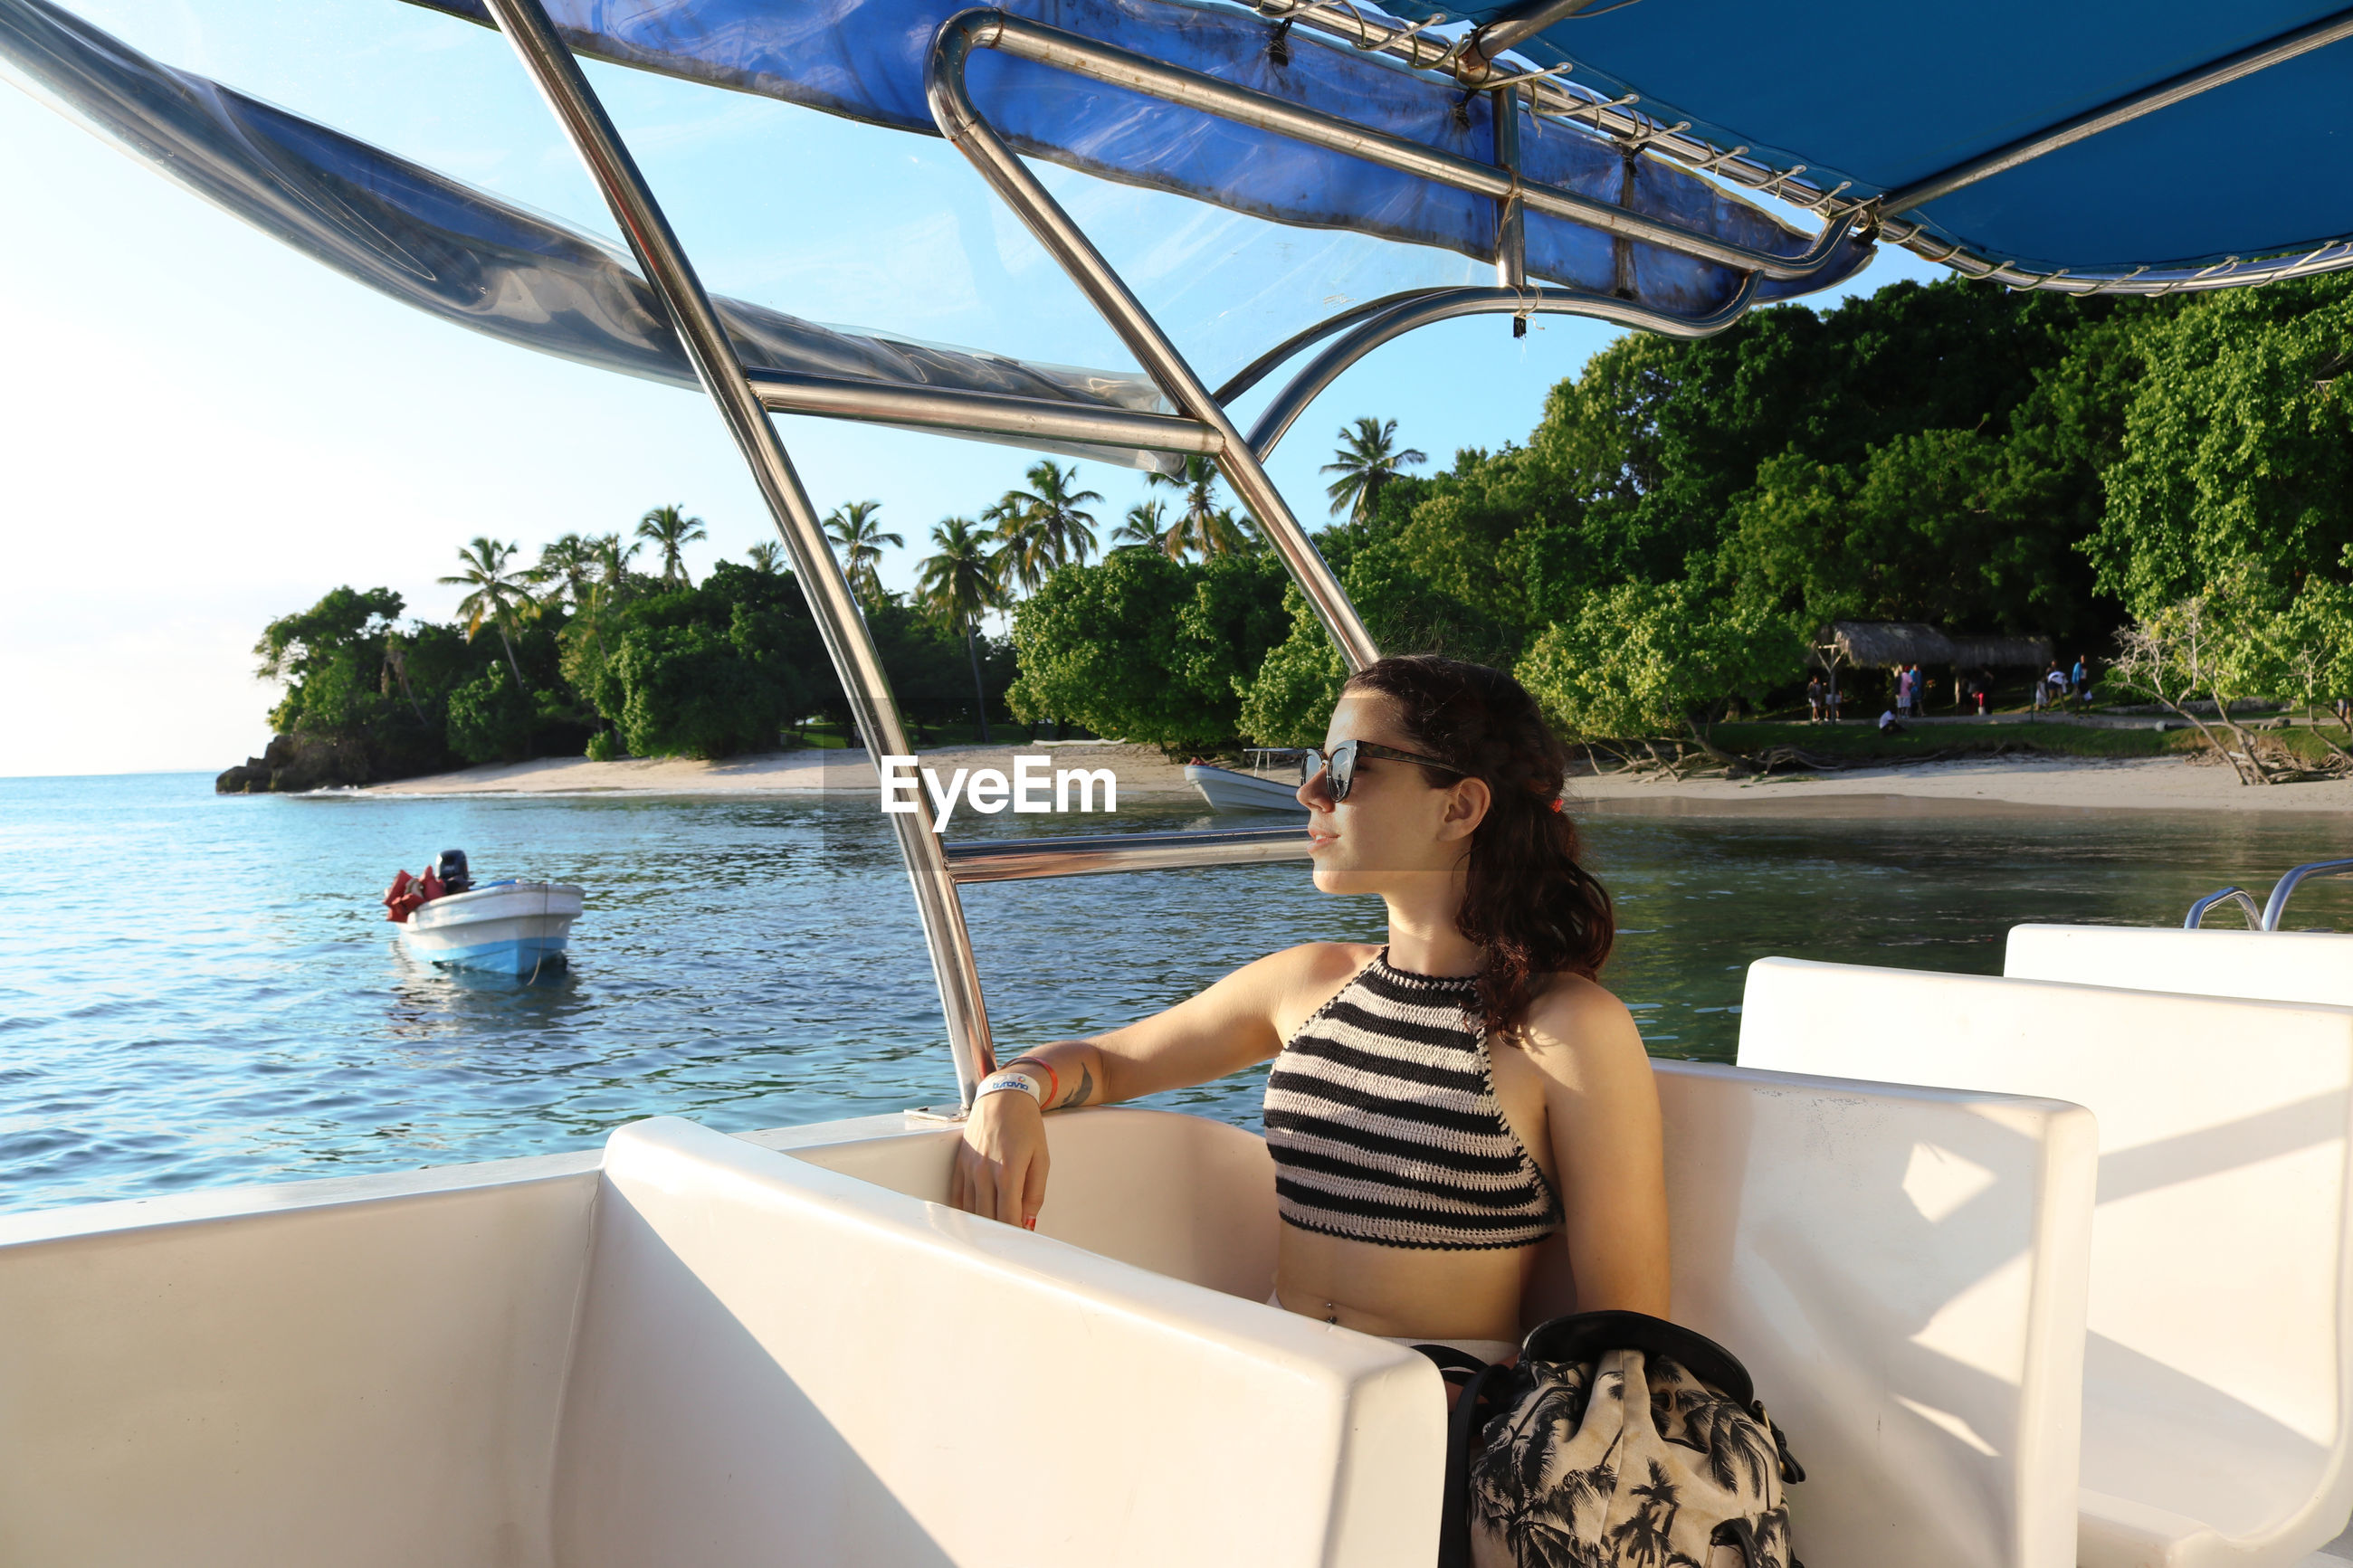 WOMAN SITTING ON BOAT AGAINST TREES